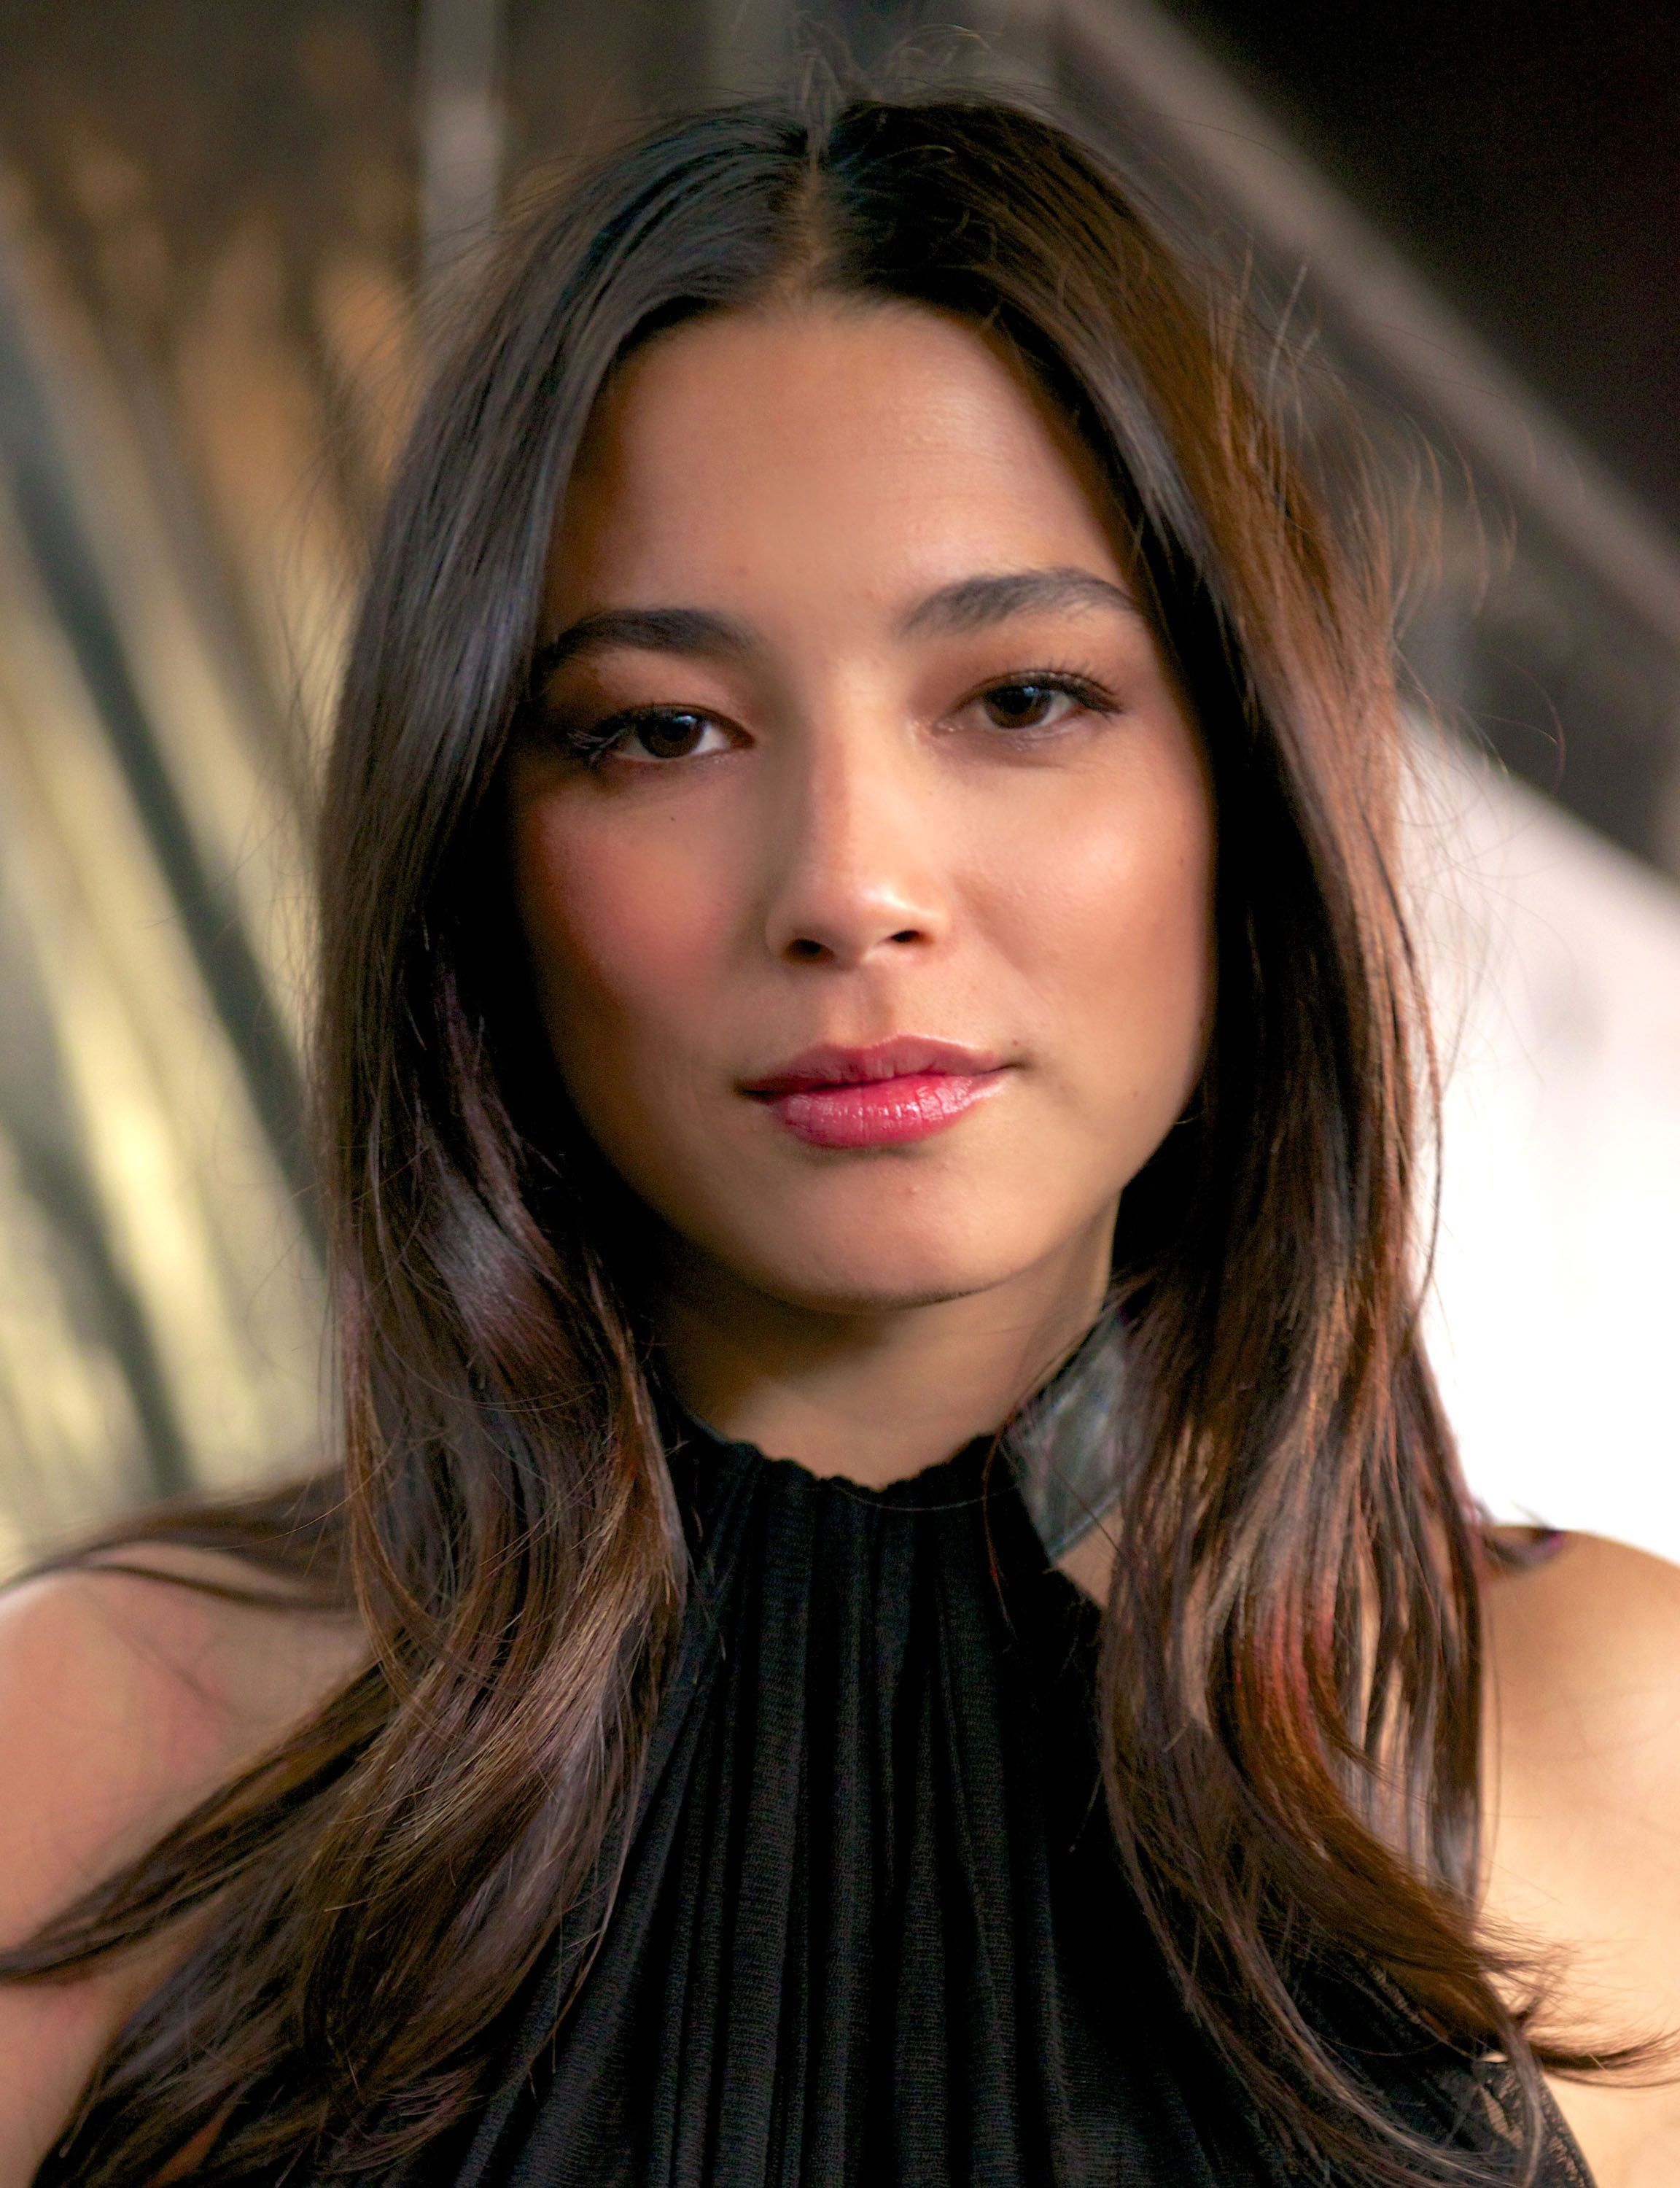 Selfie Jessica Gomes nude (69 foto and video), Sexy, Paparazzi, Instagram, braless 2015